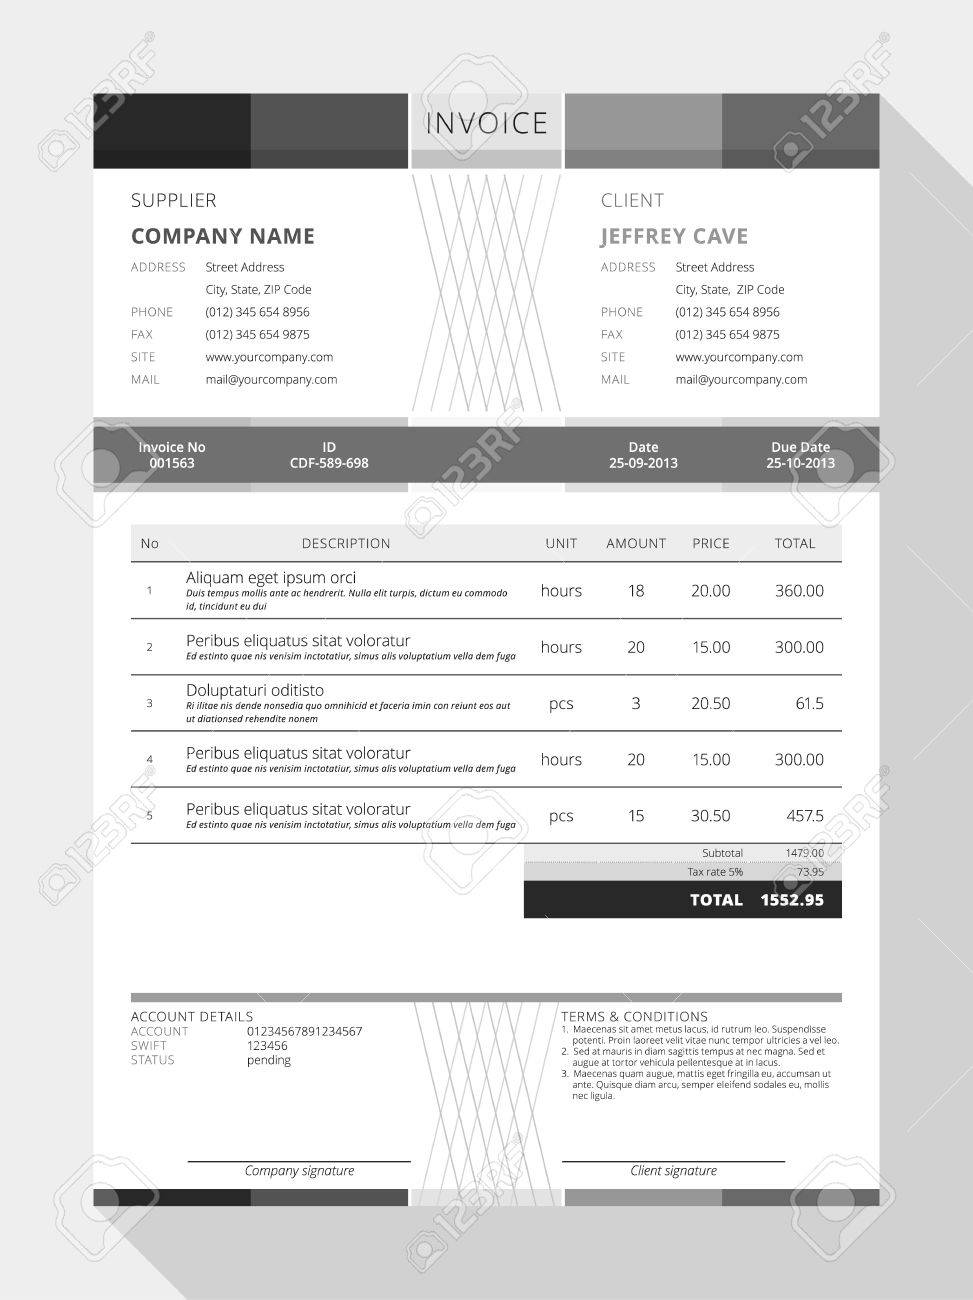 Darkfaderus  Seductive Design An Invoice  Professional Graphic Design Invoice  With Licious Vector Customizable Invoice Form Template Design Vector   Design An Invoice With Breathtaking Invoice Performa Also Create A Invoice Free In Addition What Does Factory Invoice Price Mean And What Is The Use Of Invoice As Well As Invoices Free Templates Additionally Construction Invoice Template Free From Happytomco With Darkfaderus  Licious Design An Invoice  Professional Graphic Design Invoice  With Breathtaking Vector Customizable Invoice Form Template Design Vector   Design An Invoice And Seductive Invoice Performa Also Create A Invoice Free In Addition What Does Factory Invoice Price Mean From Happytomco